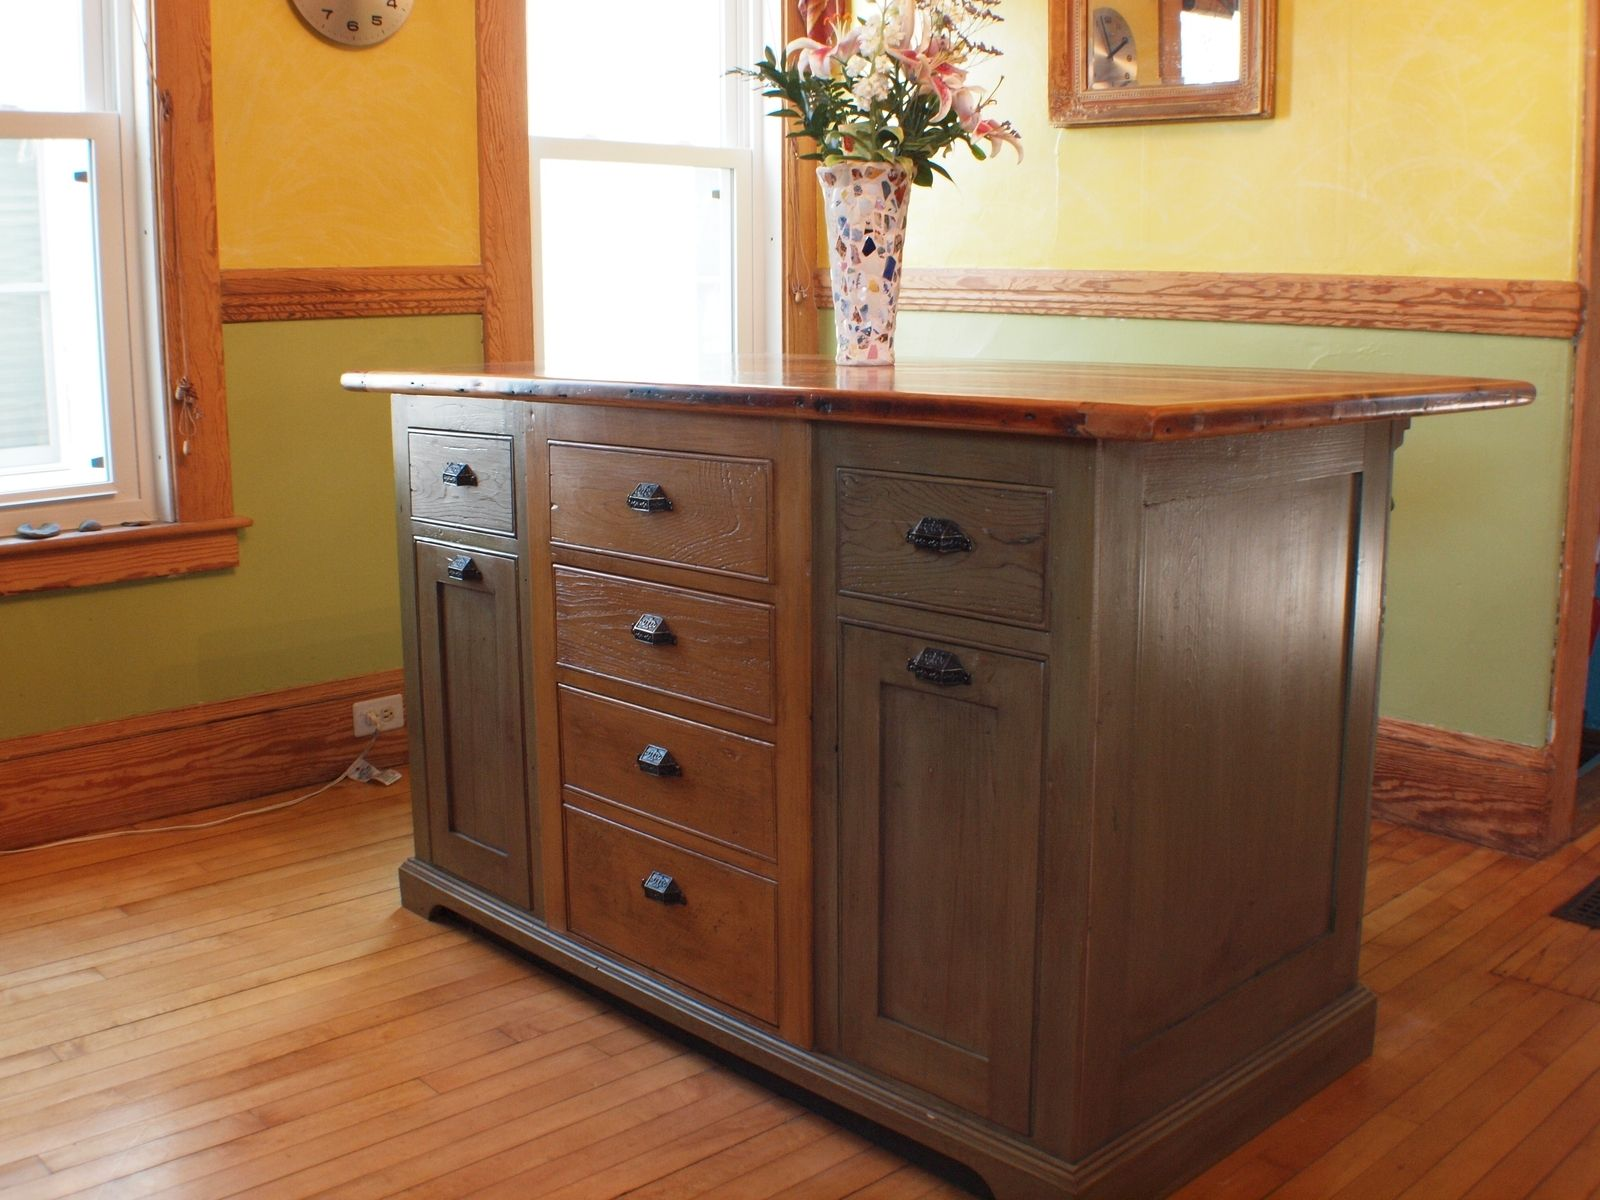 Handmade rustic kitchen island with wood top by rustique for Custom kitchen islands